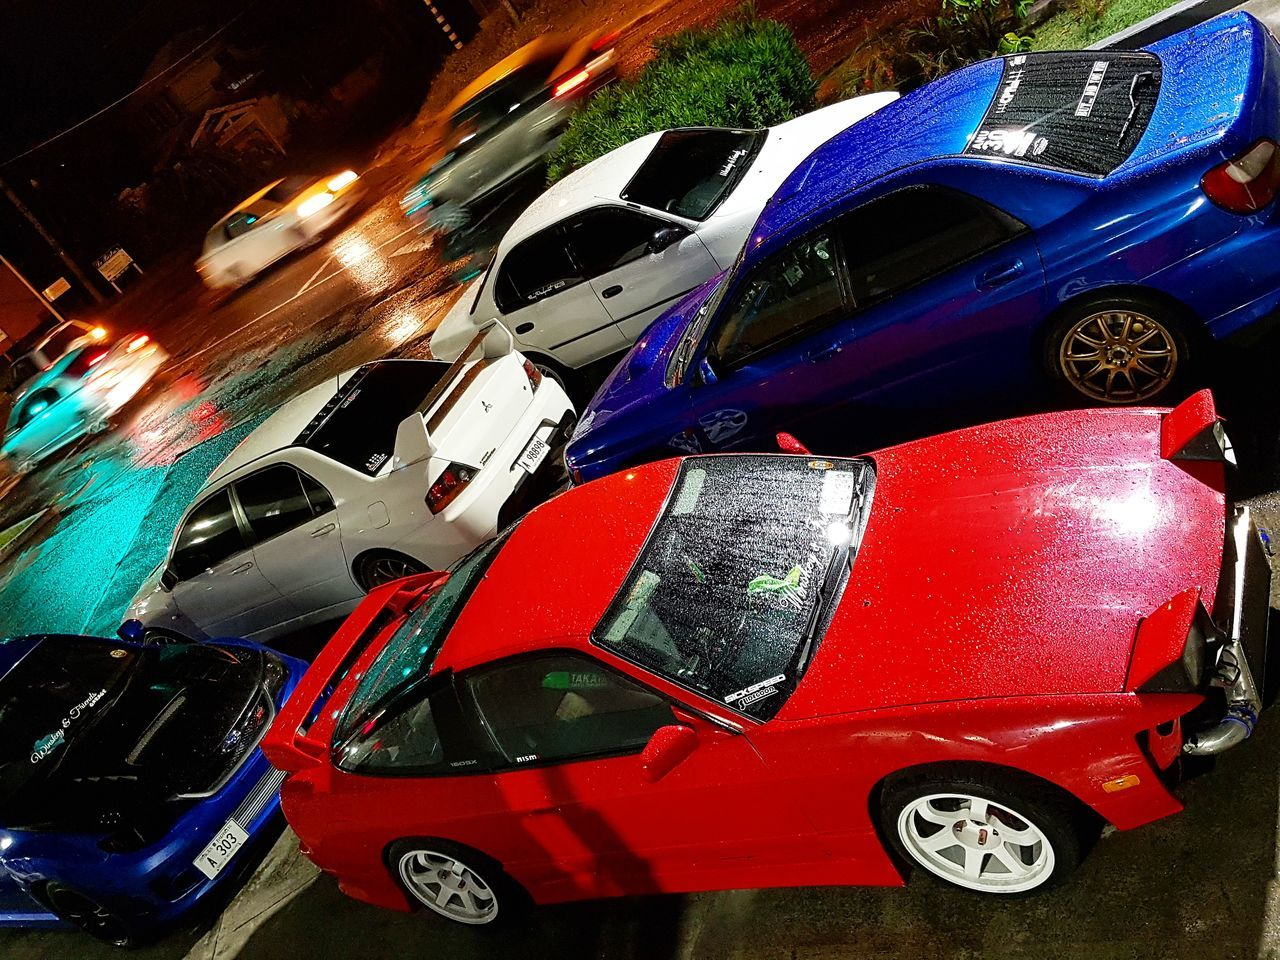 The Crew Winskeyandfriends Cars Antigua And Barbuda Gas Station Subaru STI Bugeye Hatchback Nissan 180sx Schassis Mitsubishi Evolution 9 Toyota Corolla Jdm